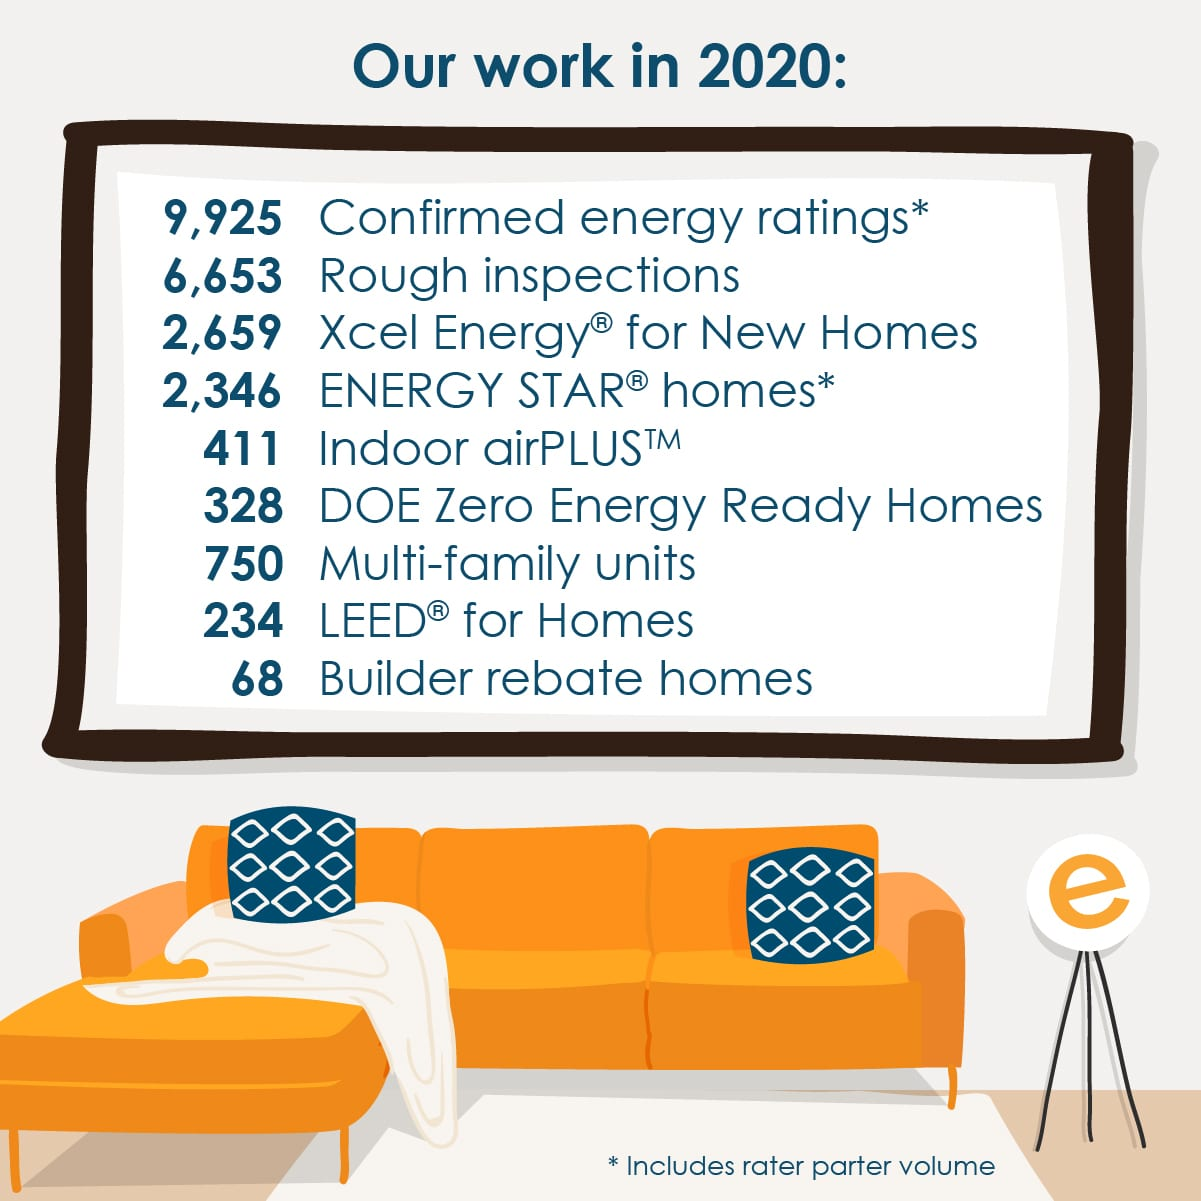 Our work in 2020 summary includes final data totals for EnergyLogic's services and work performed in homes.